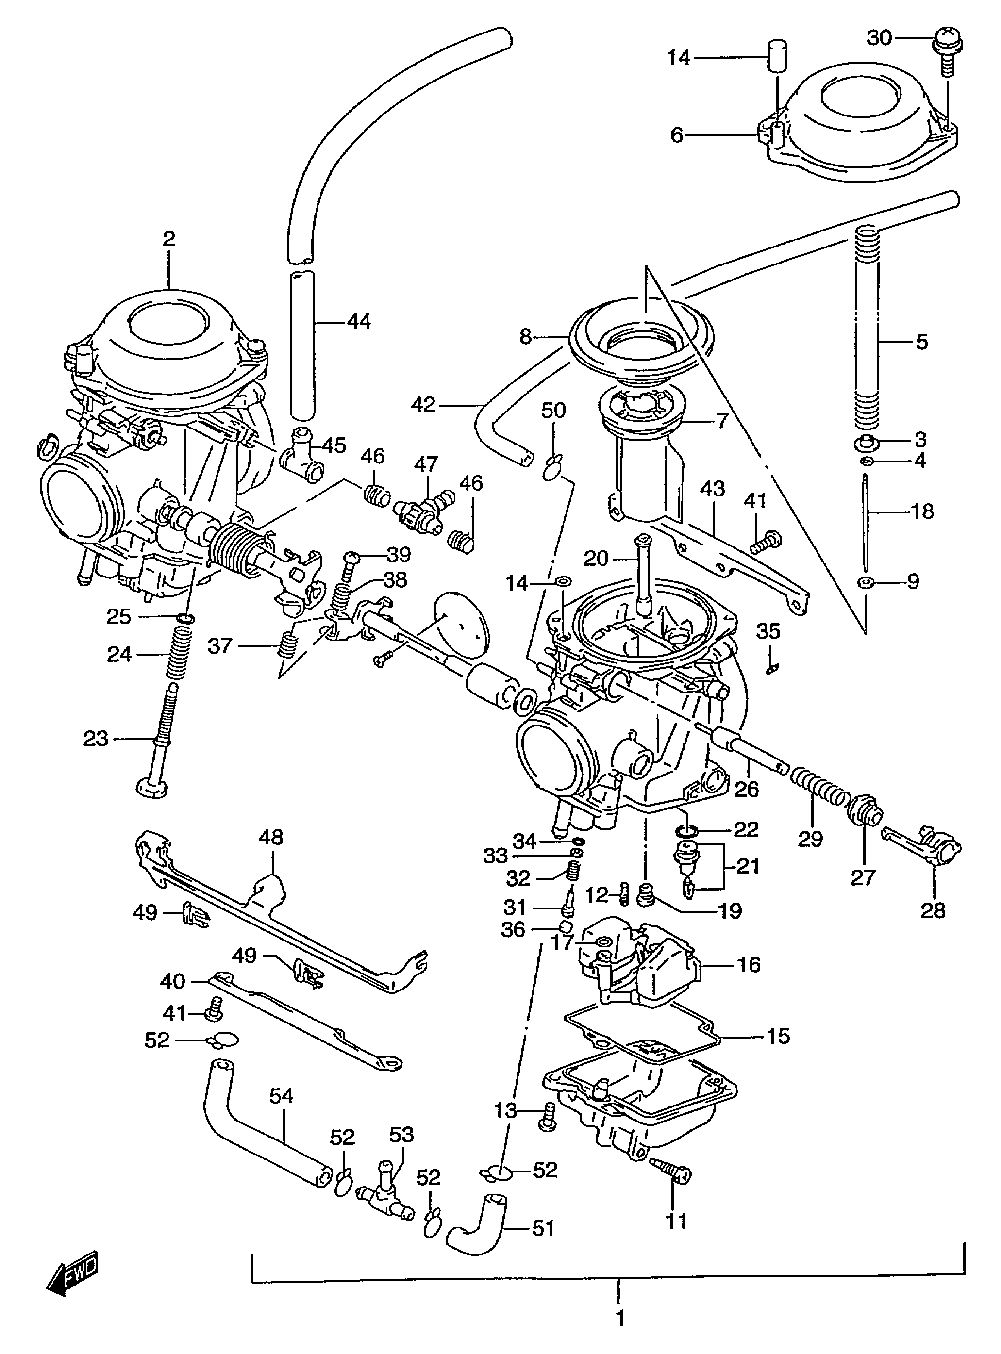 [WRG-3124] F650 Engine Diagram